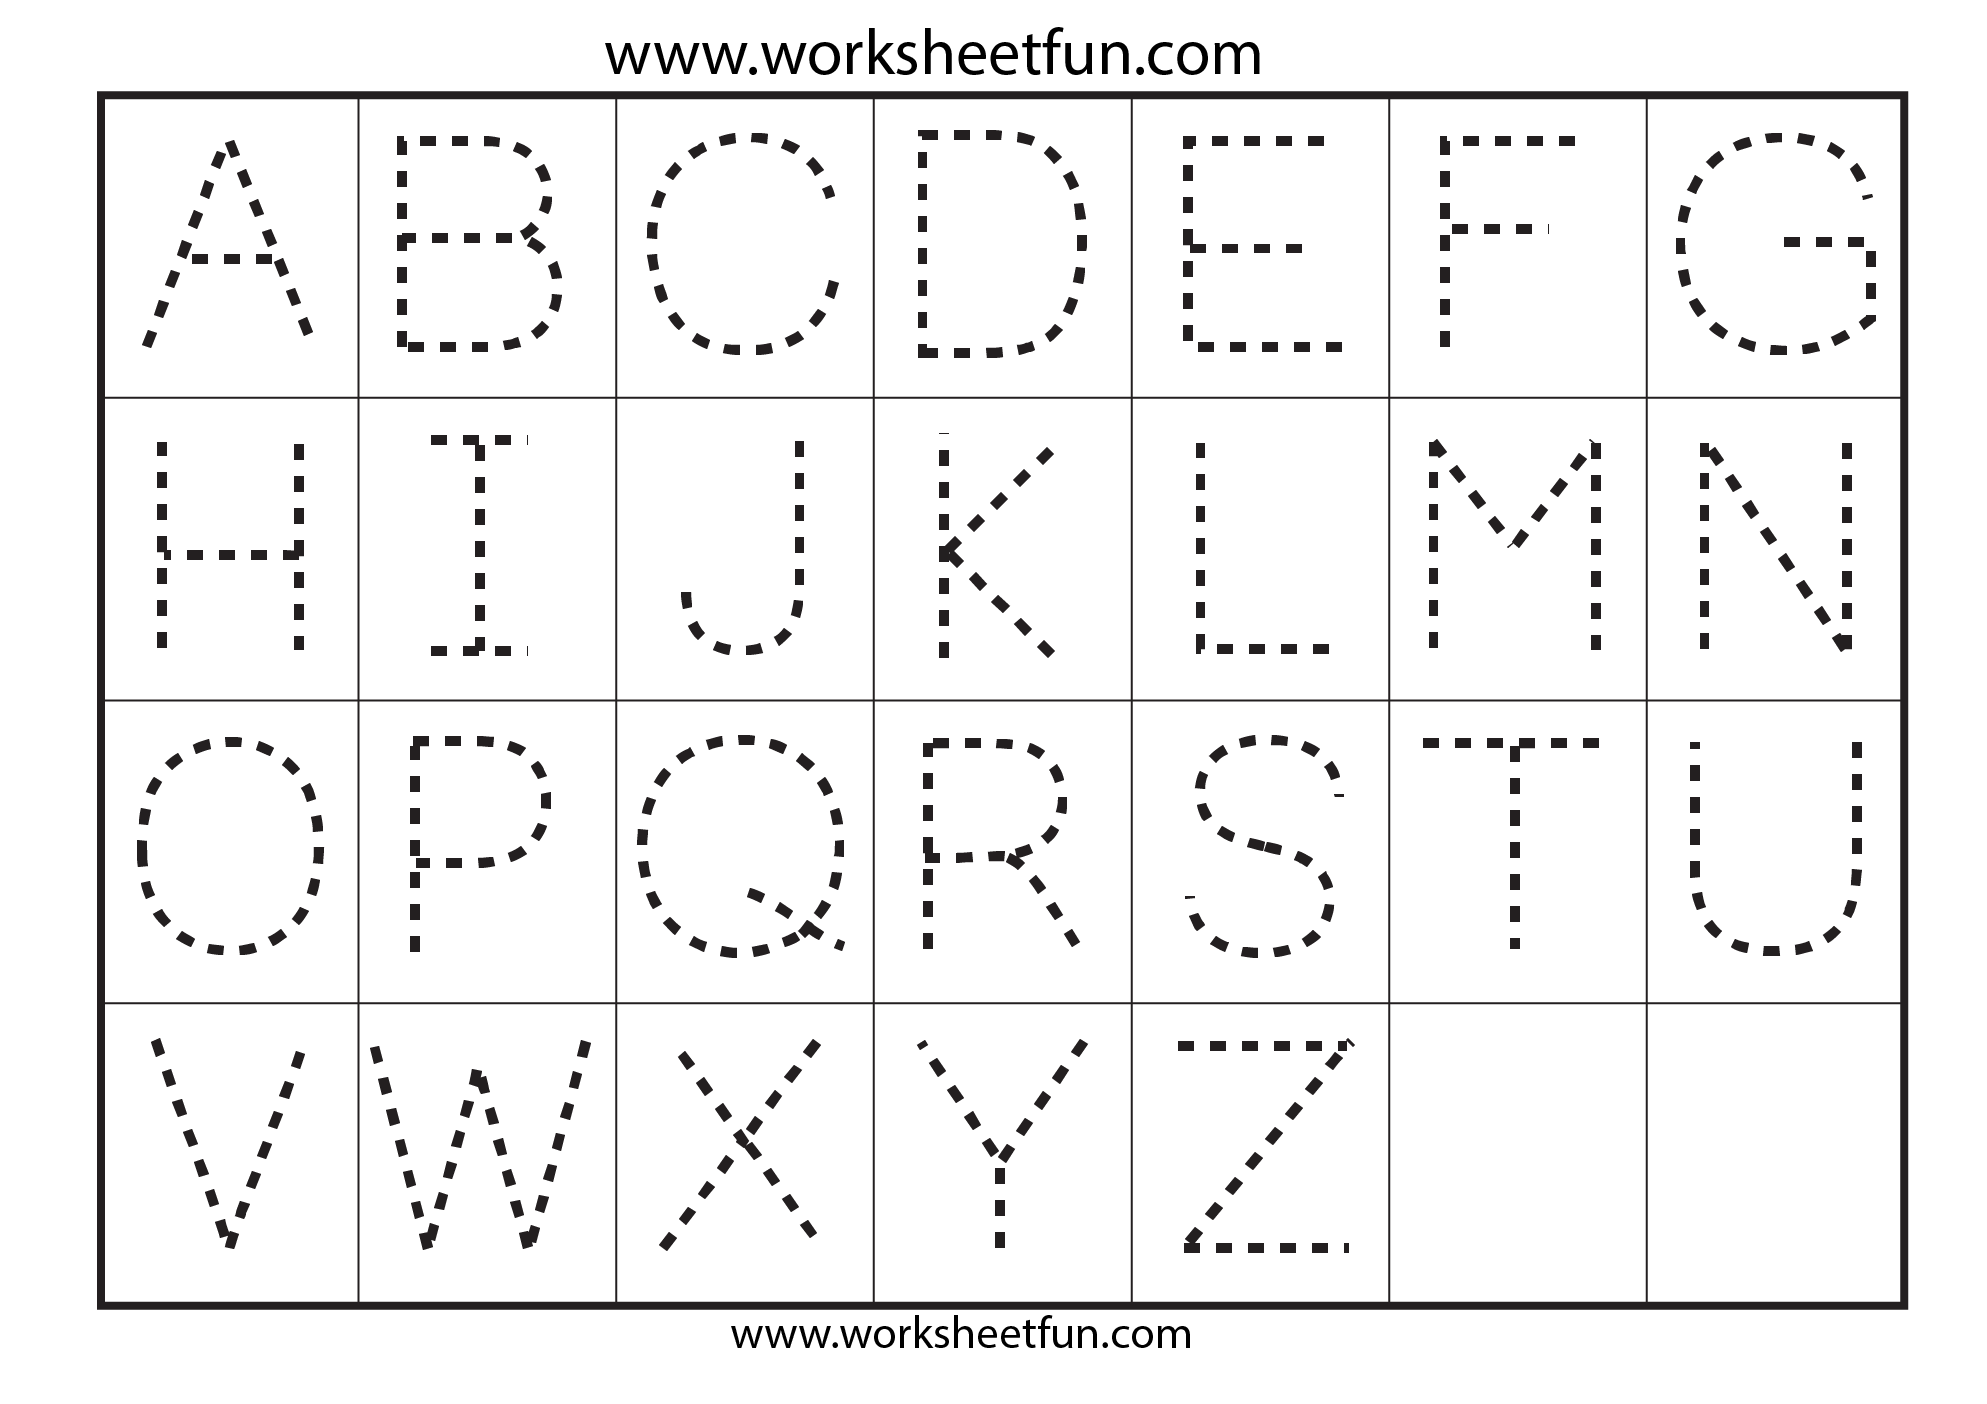 worksheet Trace The Letter S Worksheets preschool worksheets alphabet tracing letter a art pinterest a